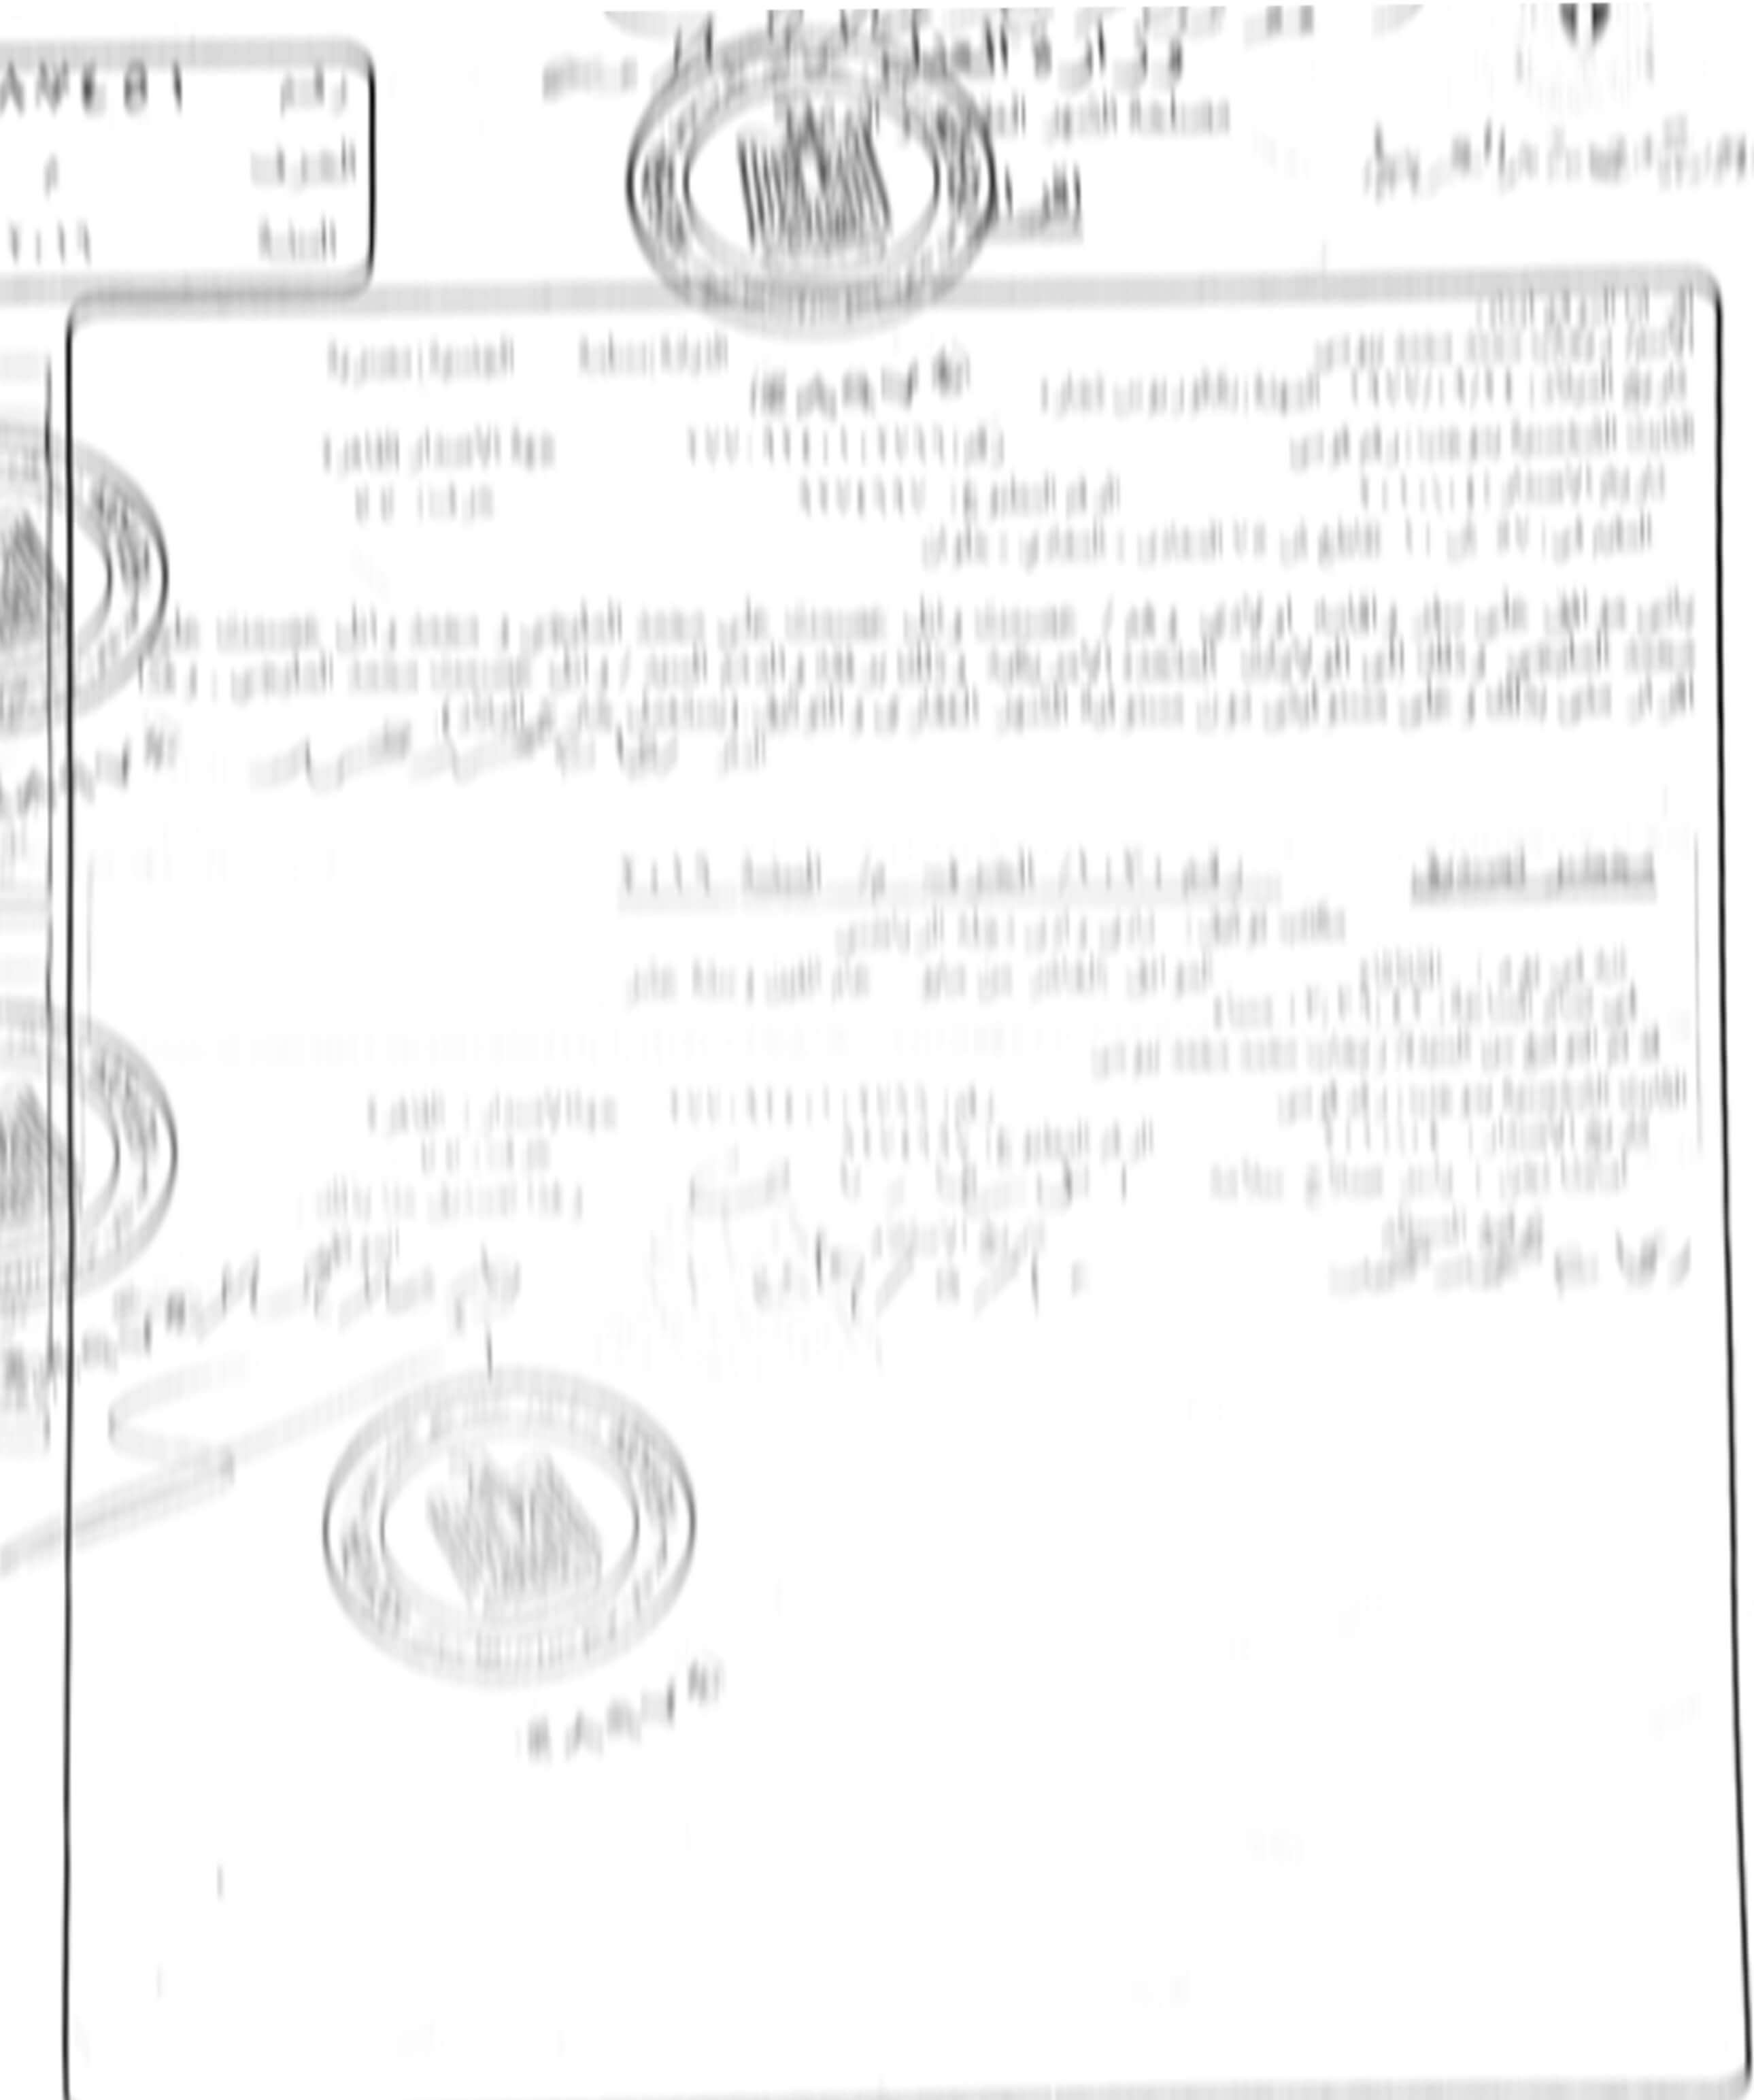 Haitian Death Certificate: Certified Translation Services At $25/page